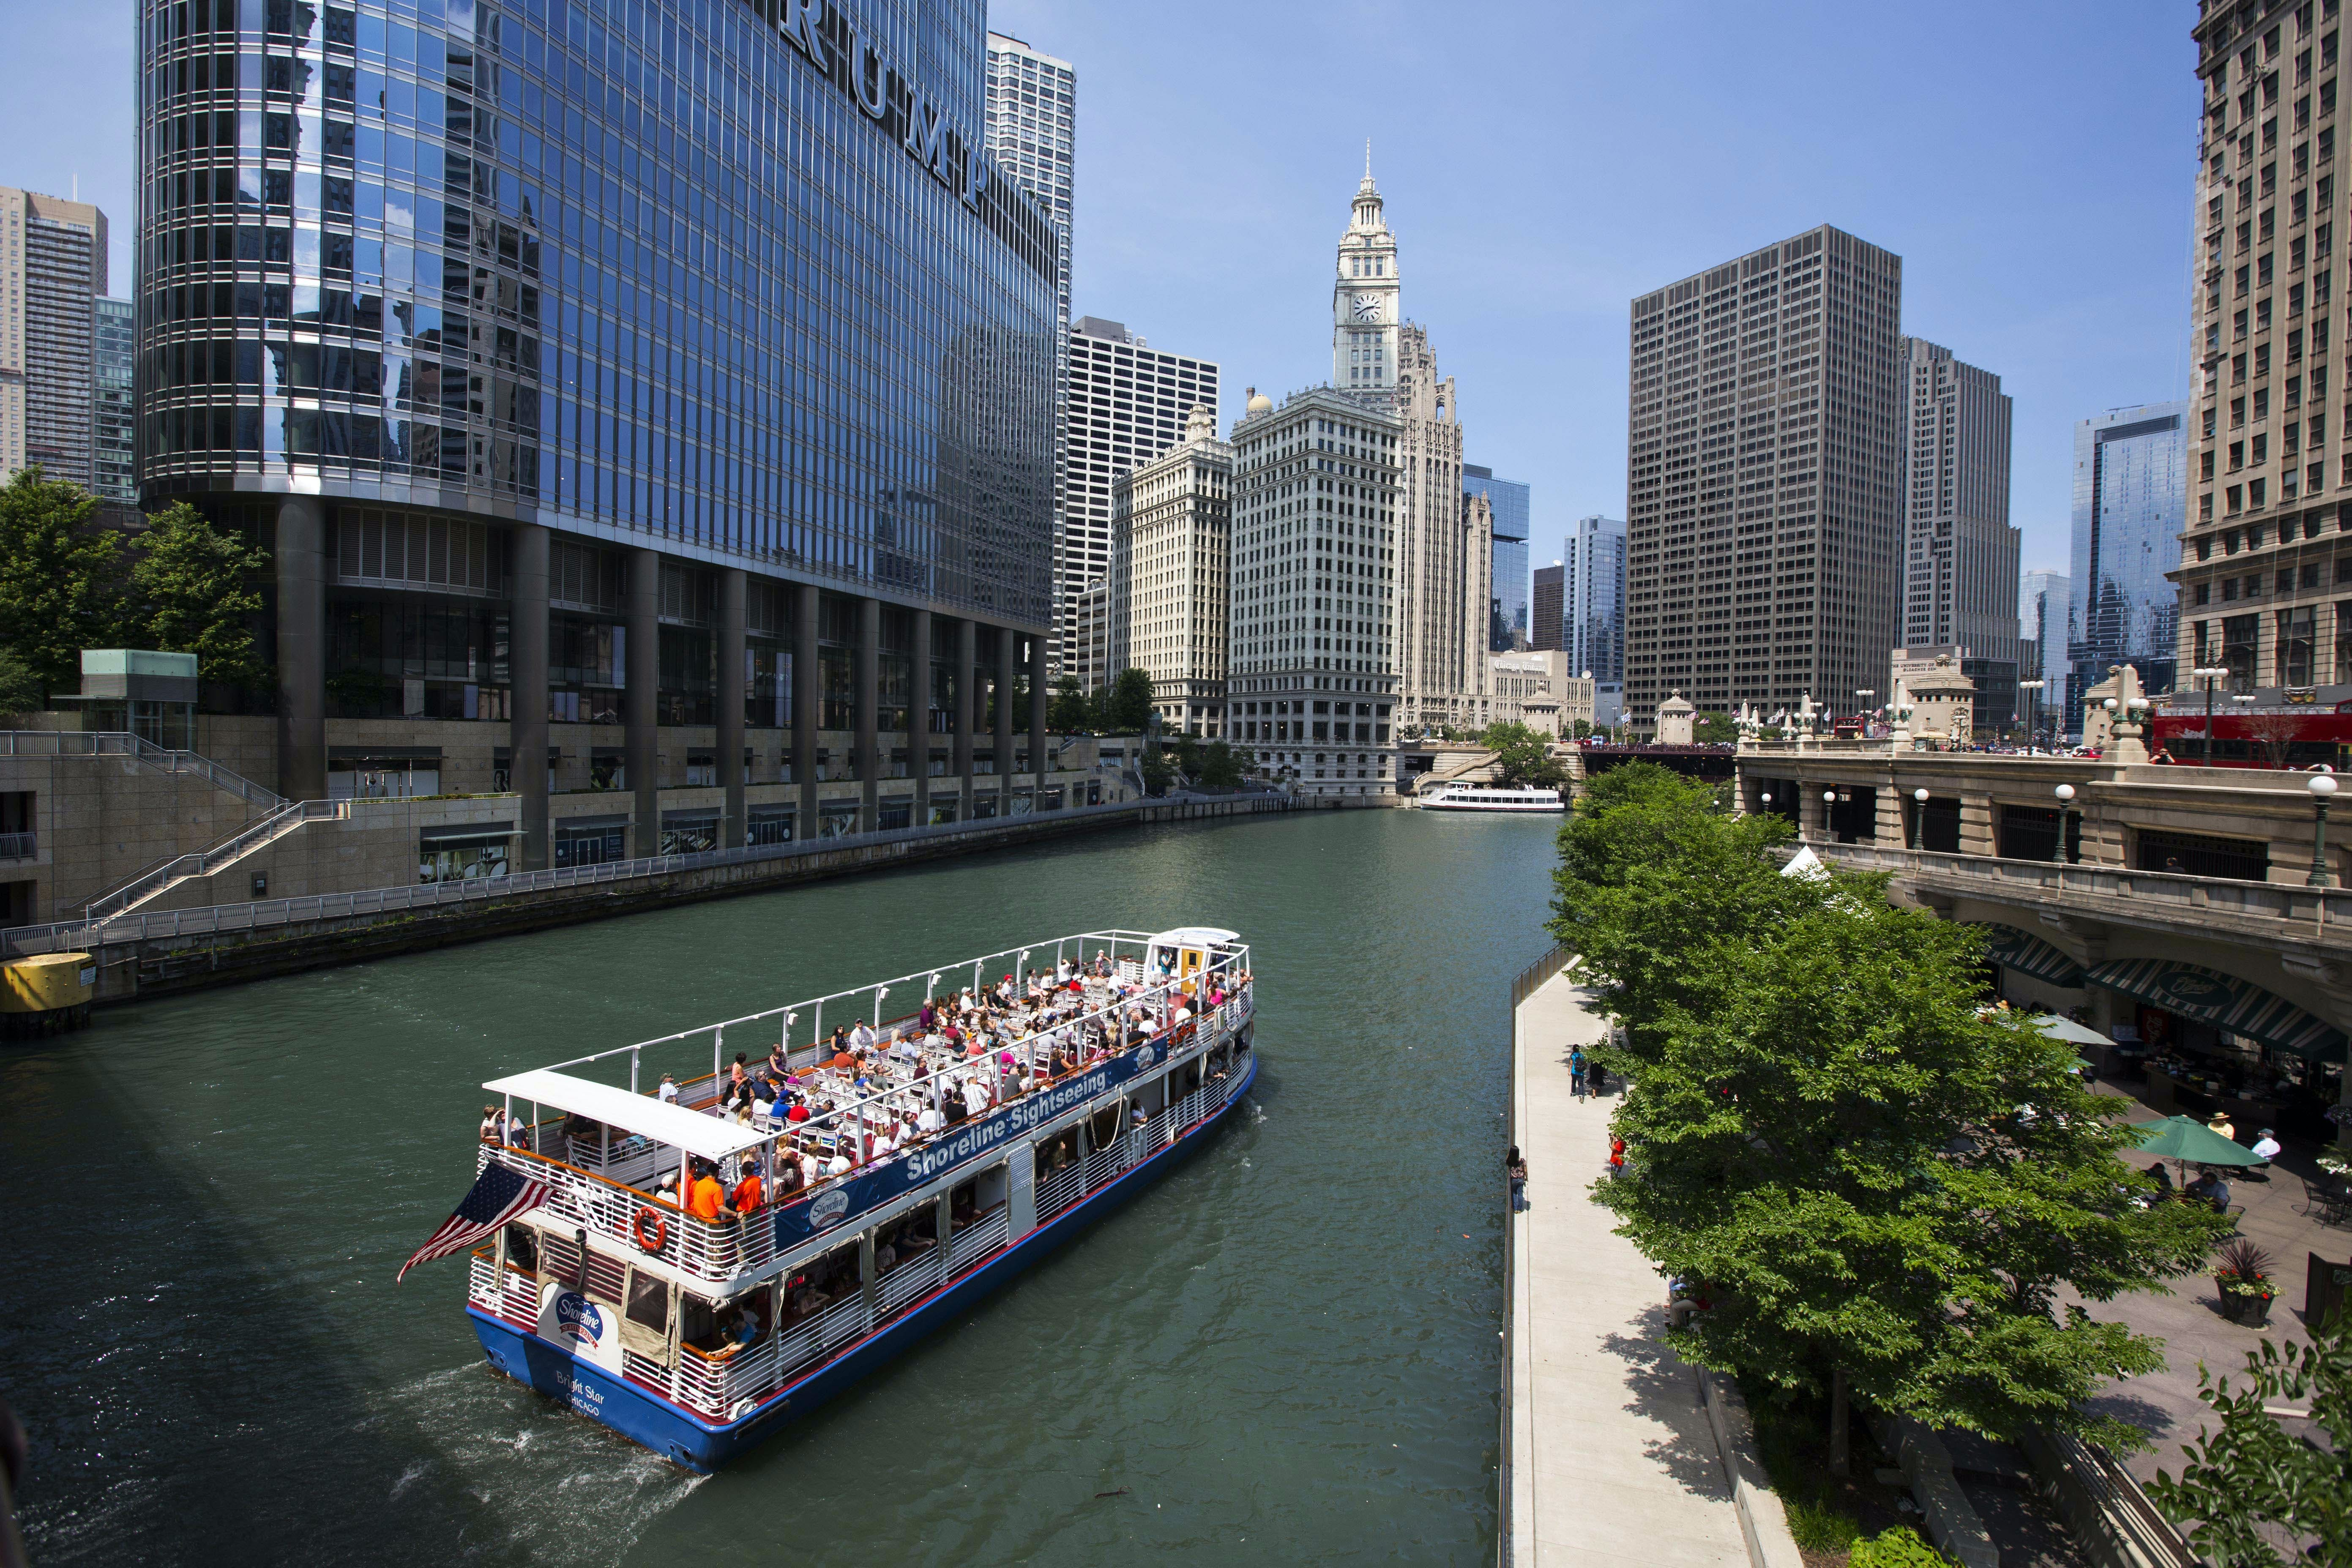 Architecture cruise on the Chicago River from Michigan Ave